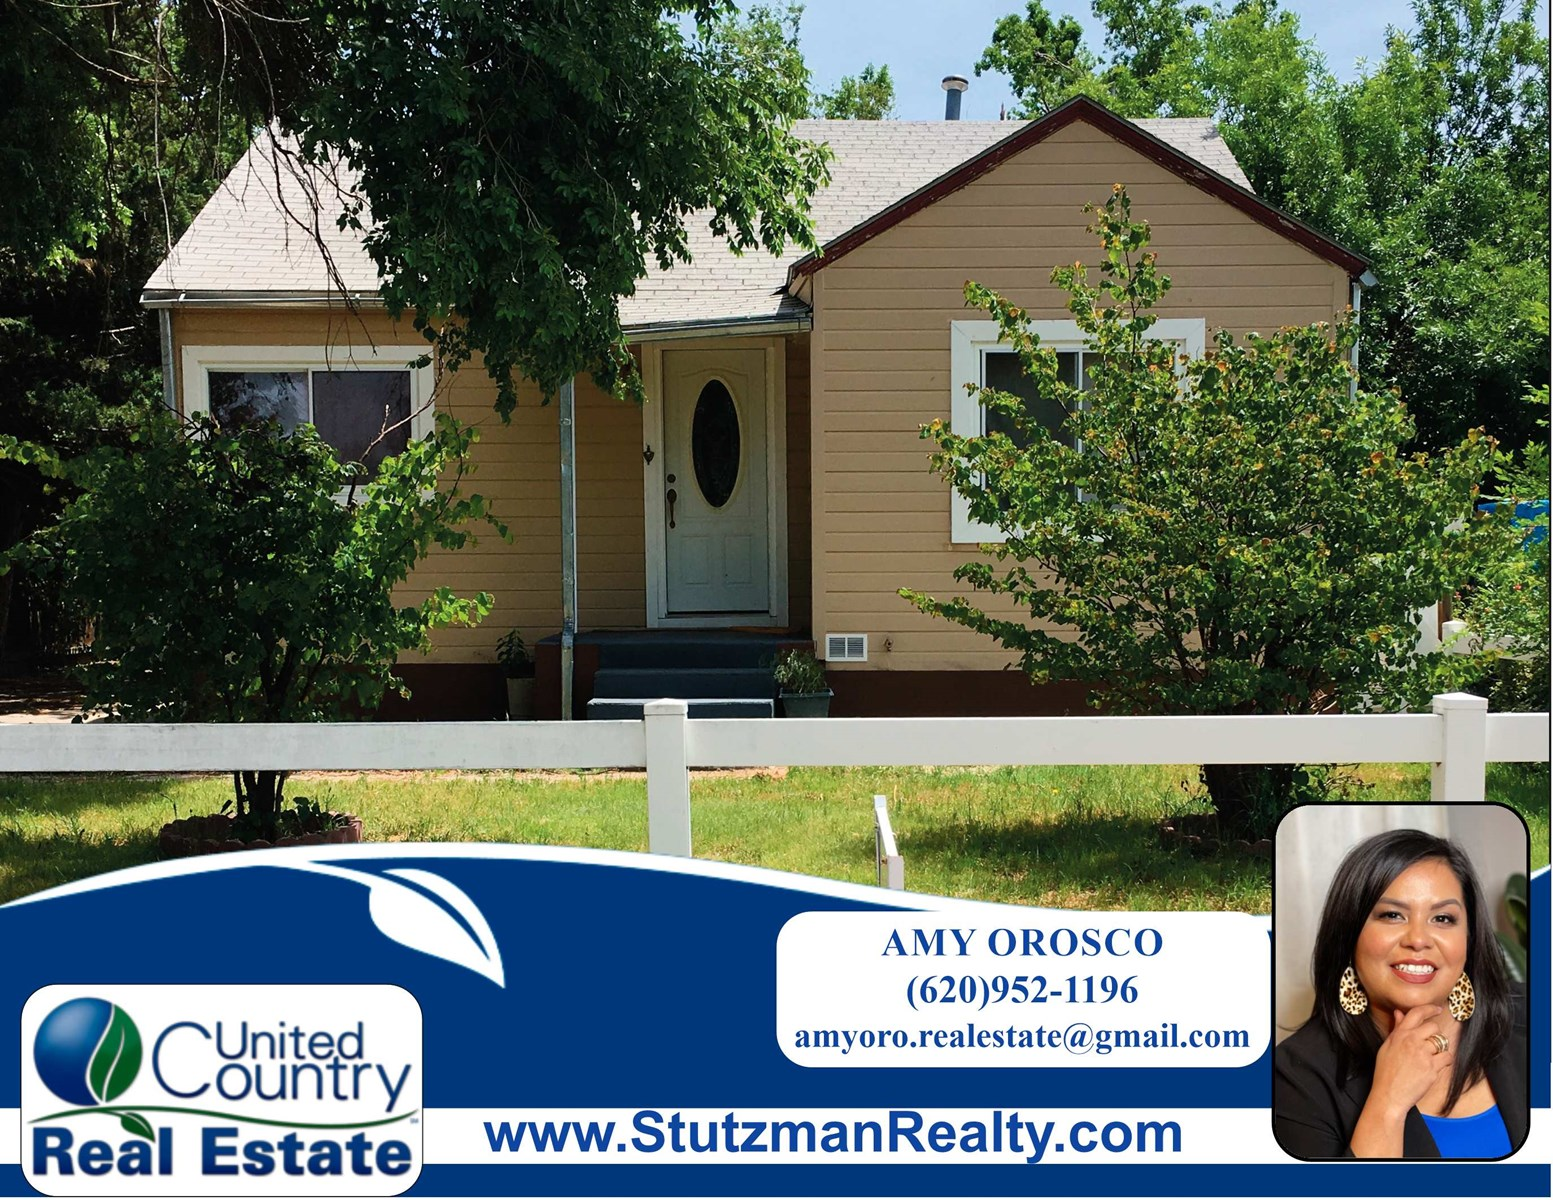 AFFORDABLE THREE BEDROOM HOME FOR SALE IN ULYSSES, KS